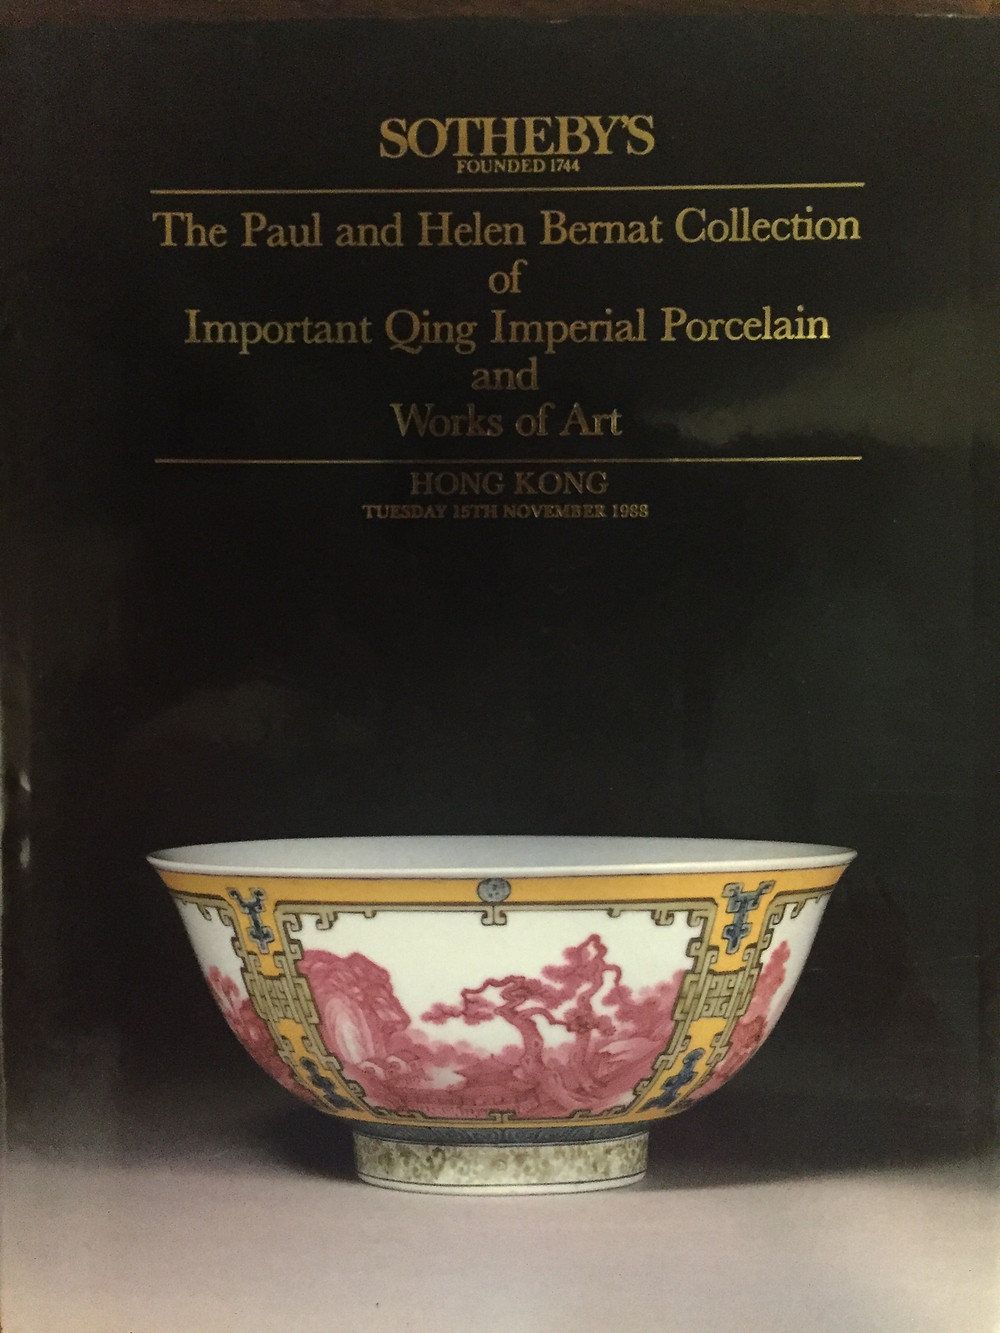 Sotheby's The Paul and Helen Bernat Collection of Important Qing Imperial Porcelain